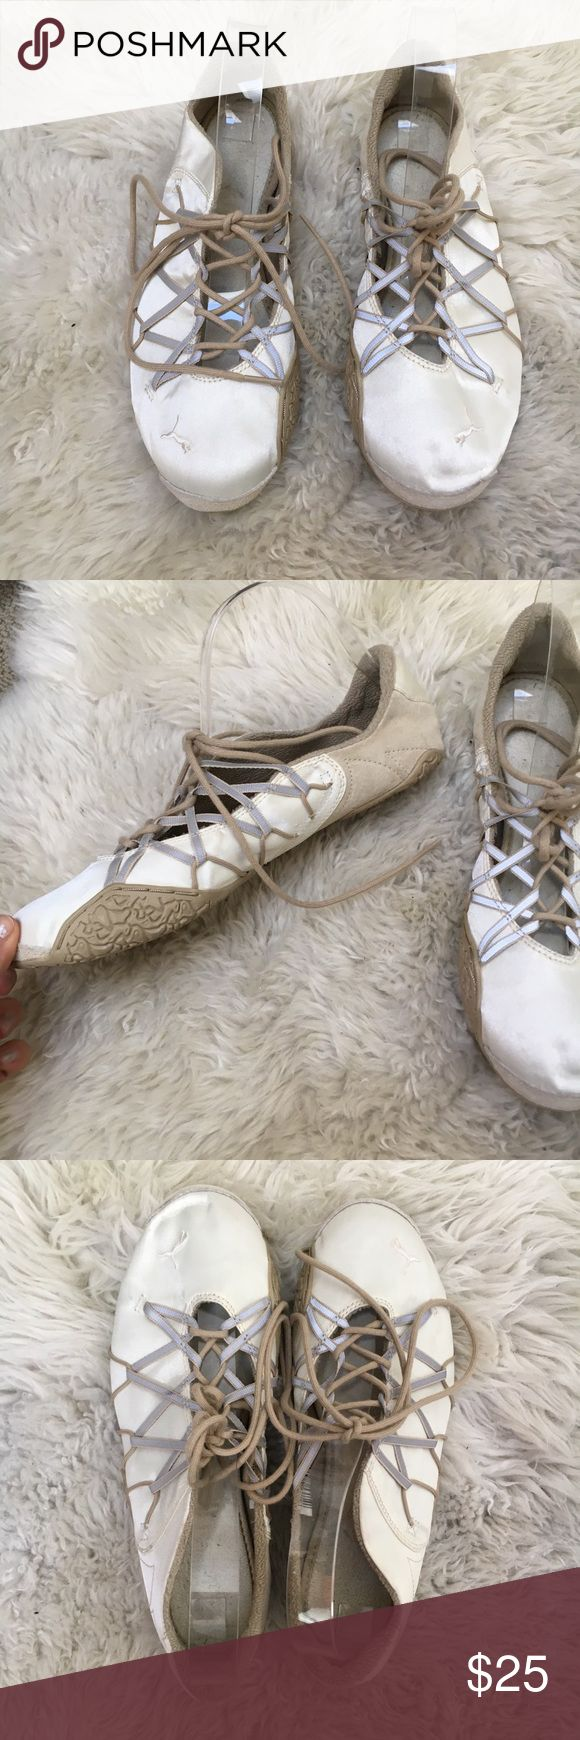 Puma Lace Up Ballerina Flats Beautiful shiny cream colored puma flats with laces. Excellent condition, very minimal signs of wear. Puma Shoes Flats & Loafers